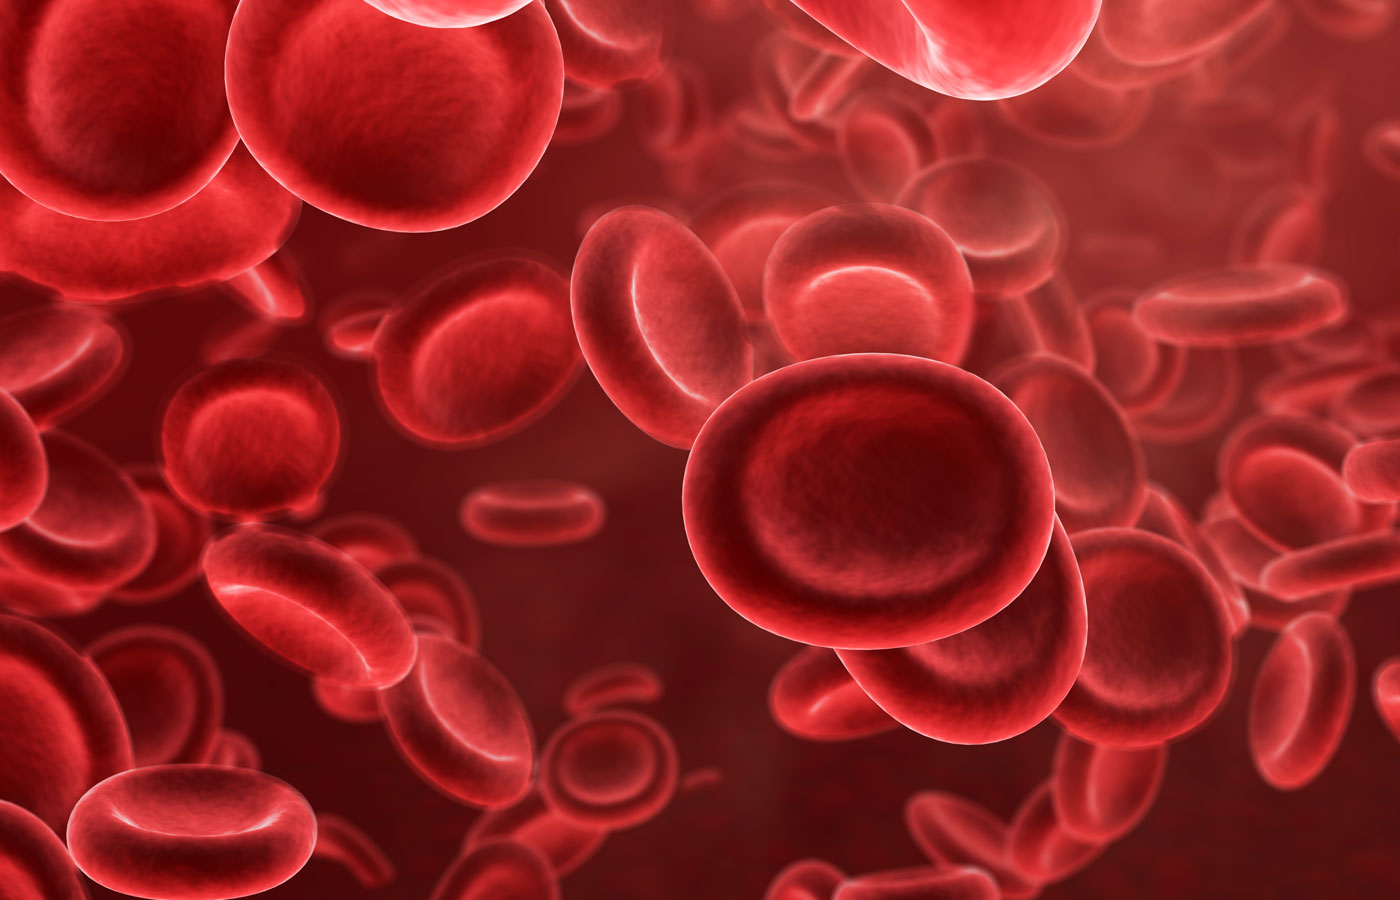 3D render of Red Blood cell background